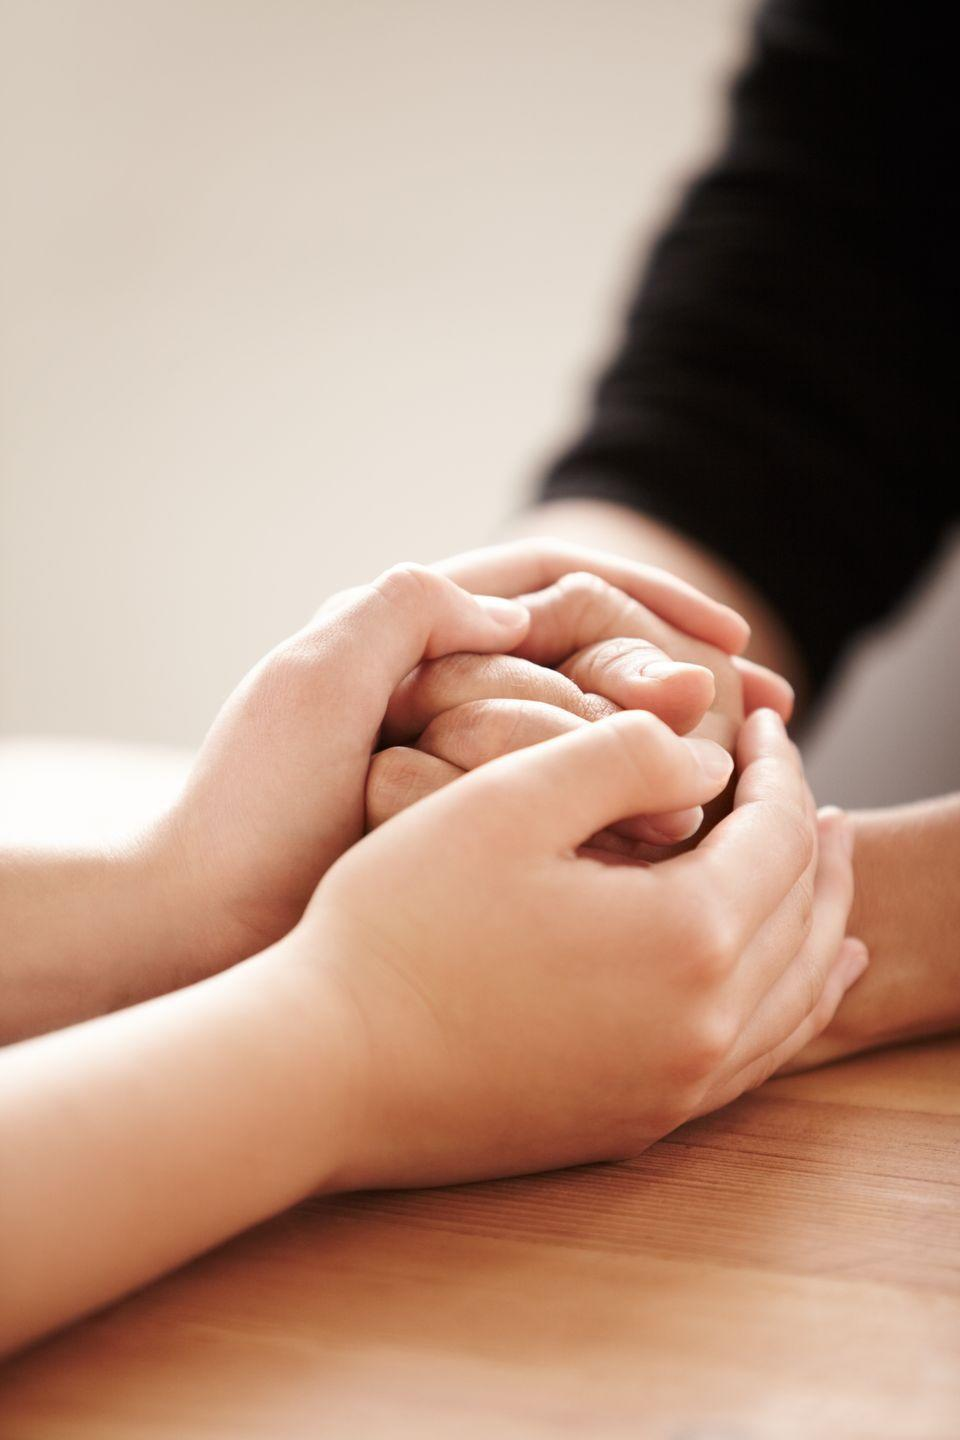 <p>Father, I'm praying for [this person] and others in my circle of family or friends in need of Your healing touch for their hurting hearts.</p><p>Some of them have received emotional wounds, some of them severe. Help them be willing to let you heal those hurts so they won't become increasingly destructive over time, for You are the Lord who heals. </p><p>I come to You with the same spirit of helplessness and dependence that Moses had when he was leading Your people through the desert. They came to water, but it was bitter and the people had nothing to drink. Moses cried out to You, and You showed him a piece of wood; when he threw it into the water, the water became sweet. I'm now coming on behalf of these who are carrying emotional pain. In my heart I bring the wood of the cross, asking that Christ, who heals the brokenhearted and binds up their wounds, would bring healing to any bitterness He finds in their hearts. </p><p>No matter what pain they've suffered, help them not to give into anger, resentment, unforgiveness, or bitterness and become captive to sin. May their hearts not become calloused or hard, but refresh them in Christ. May they not lose heart but be inwardly renewed day by day. In Jesus' name, amen.</p><p>— <em>Jim and Kaye Johns</em></p>